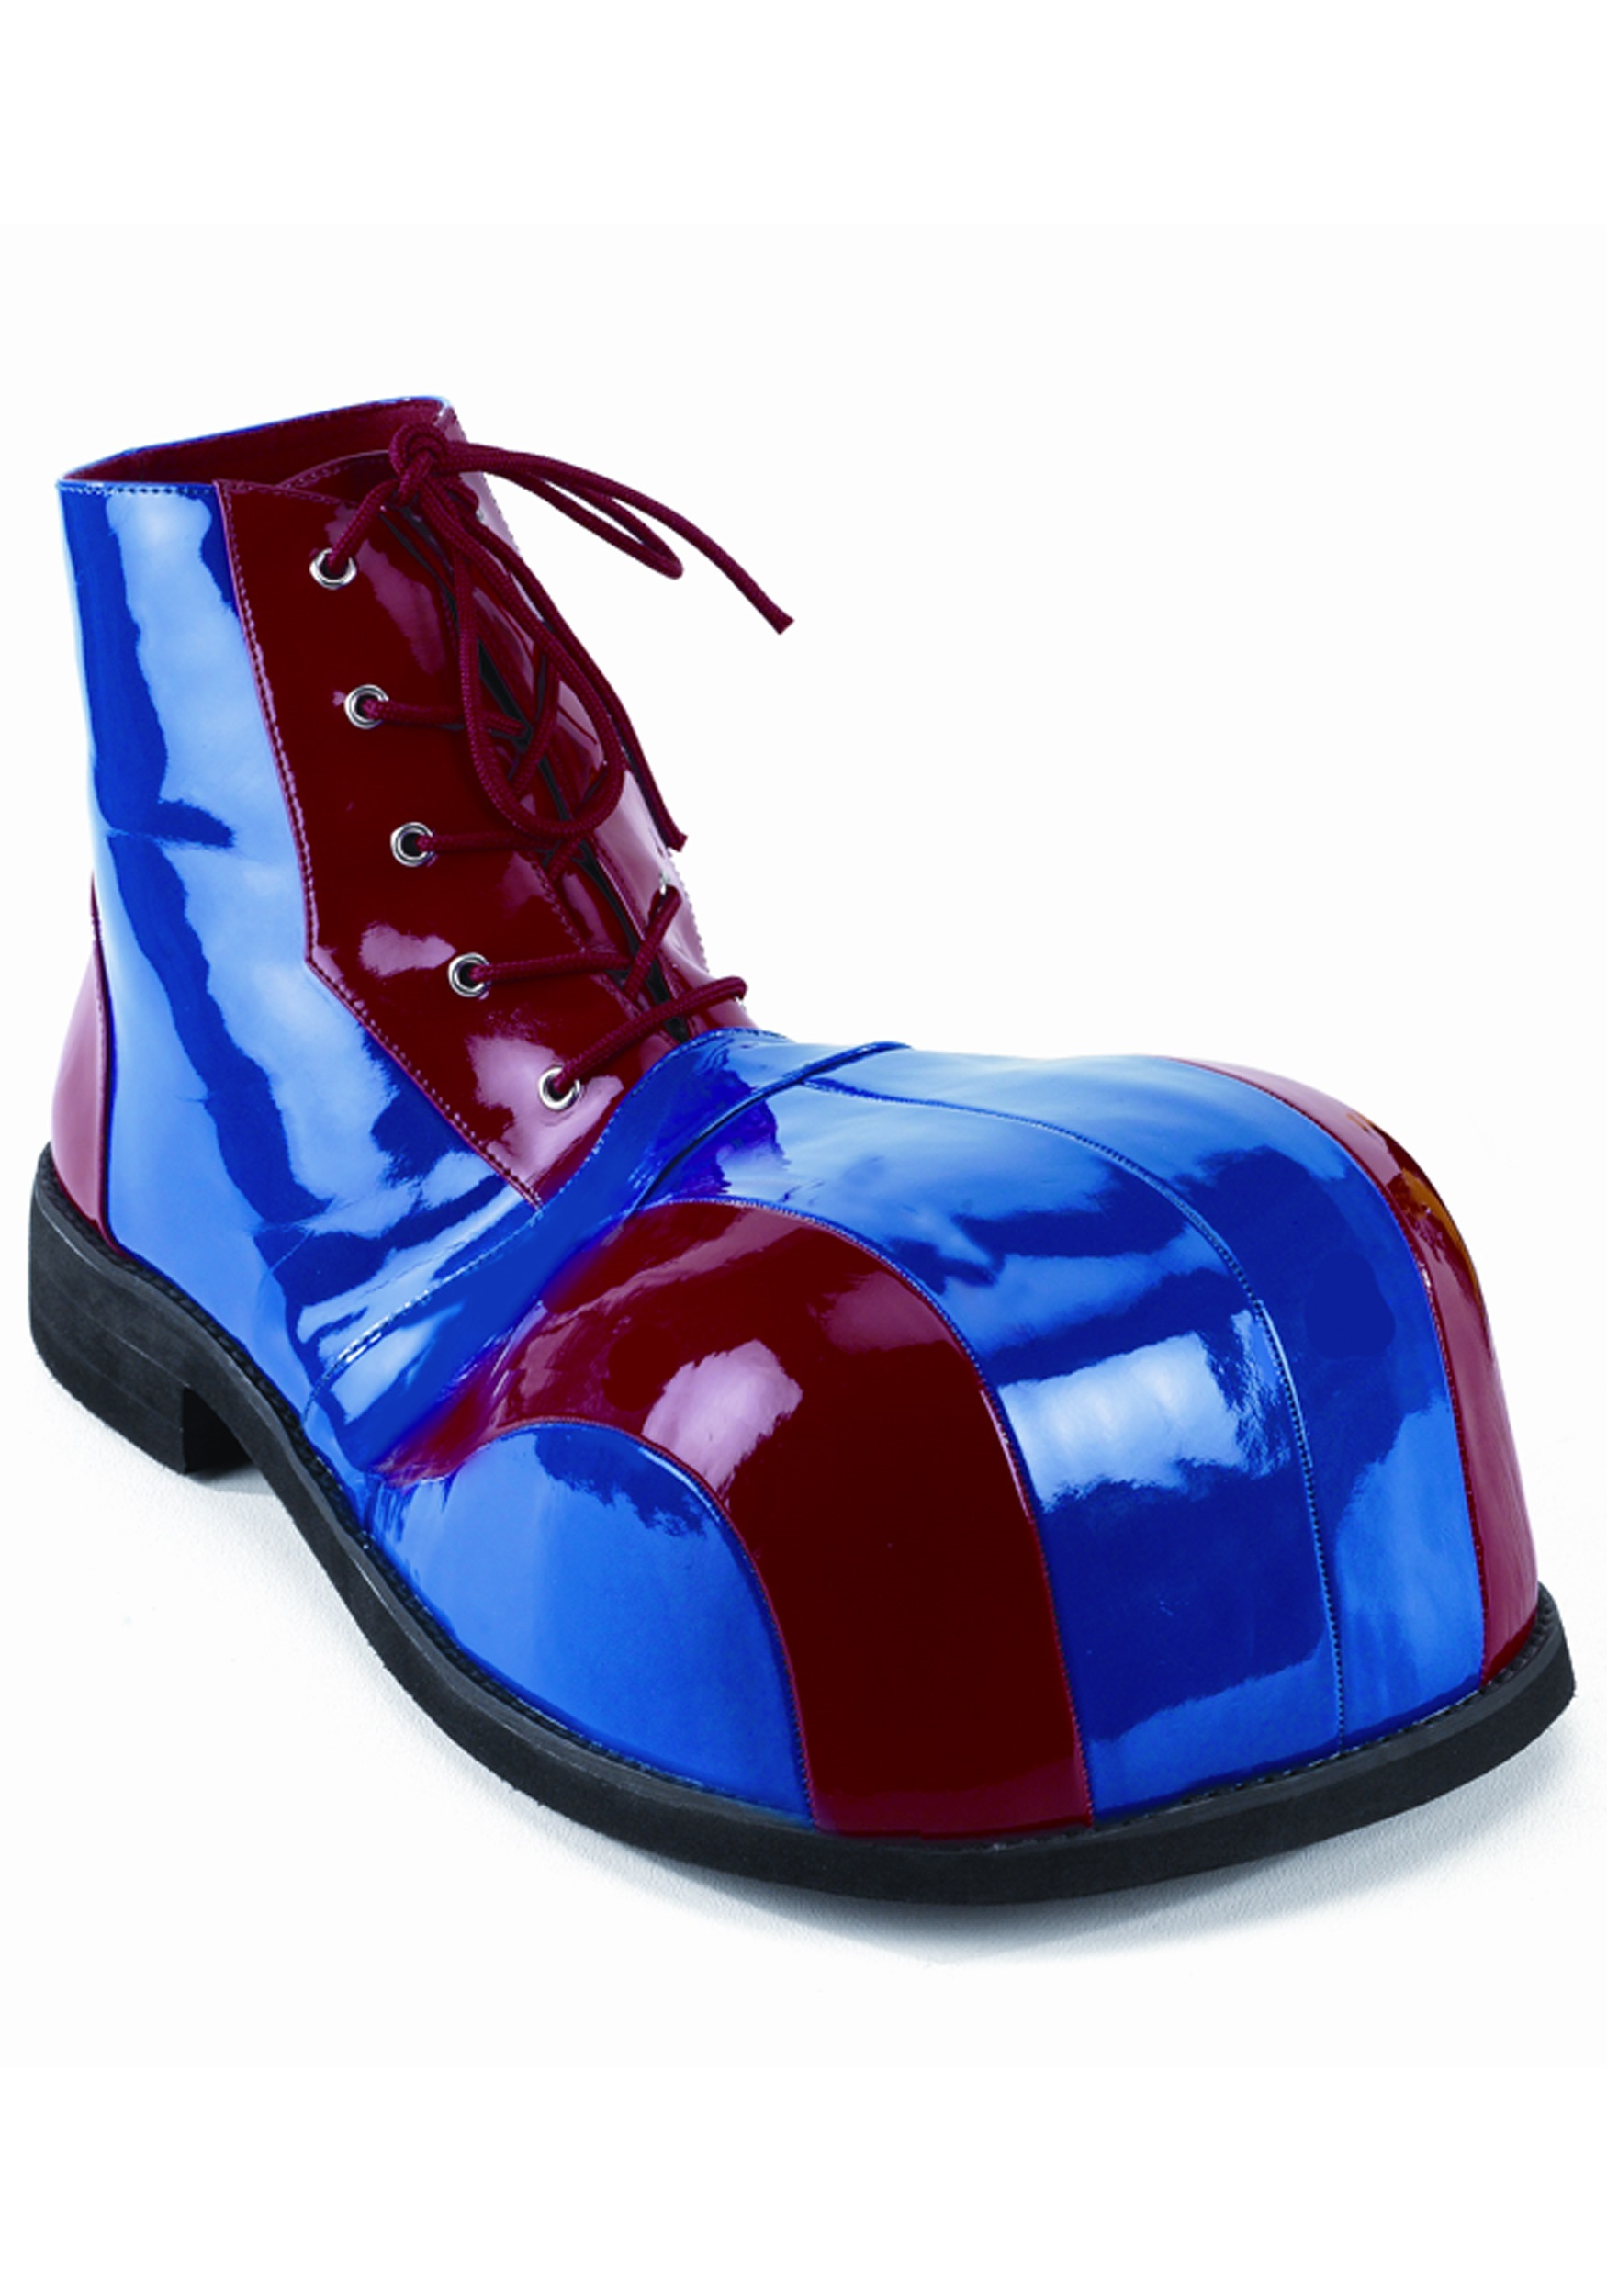 Ok, you decide women's footwear, or creepy clown shoes